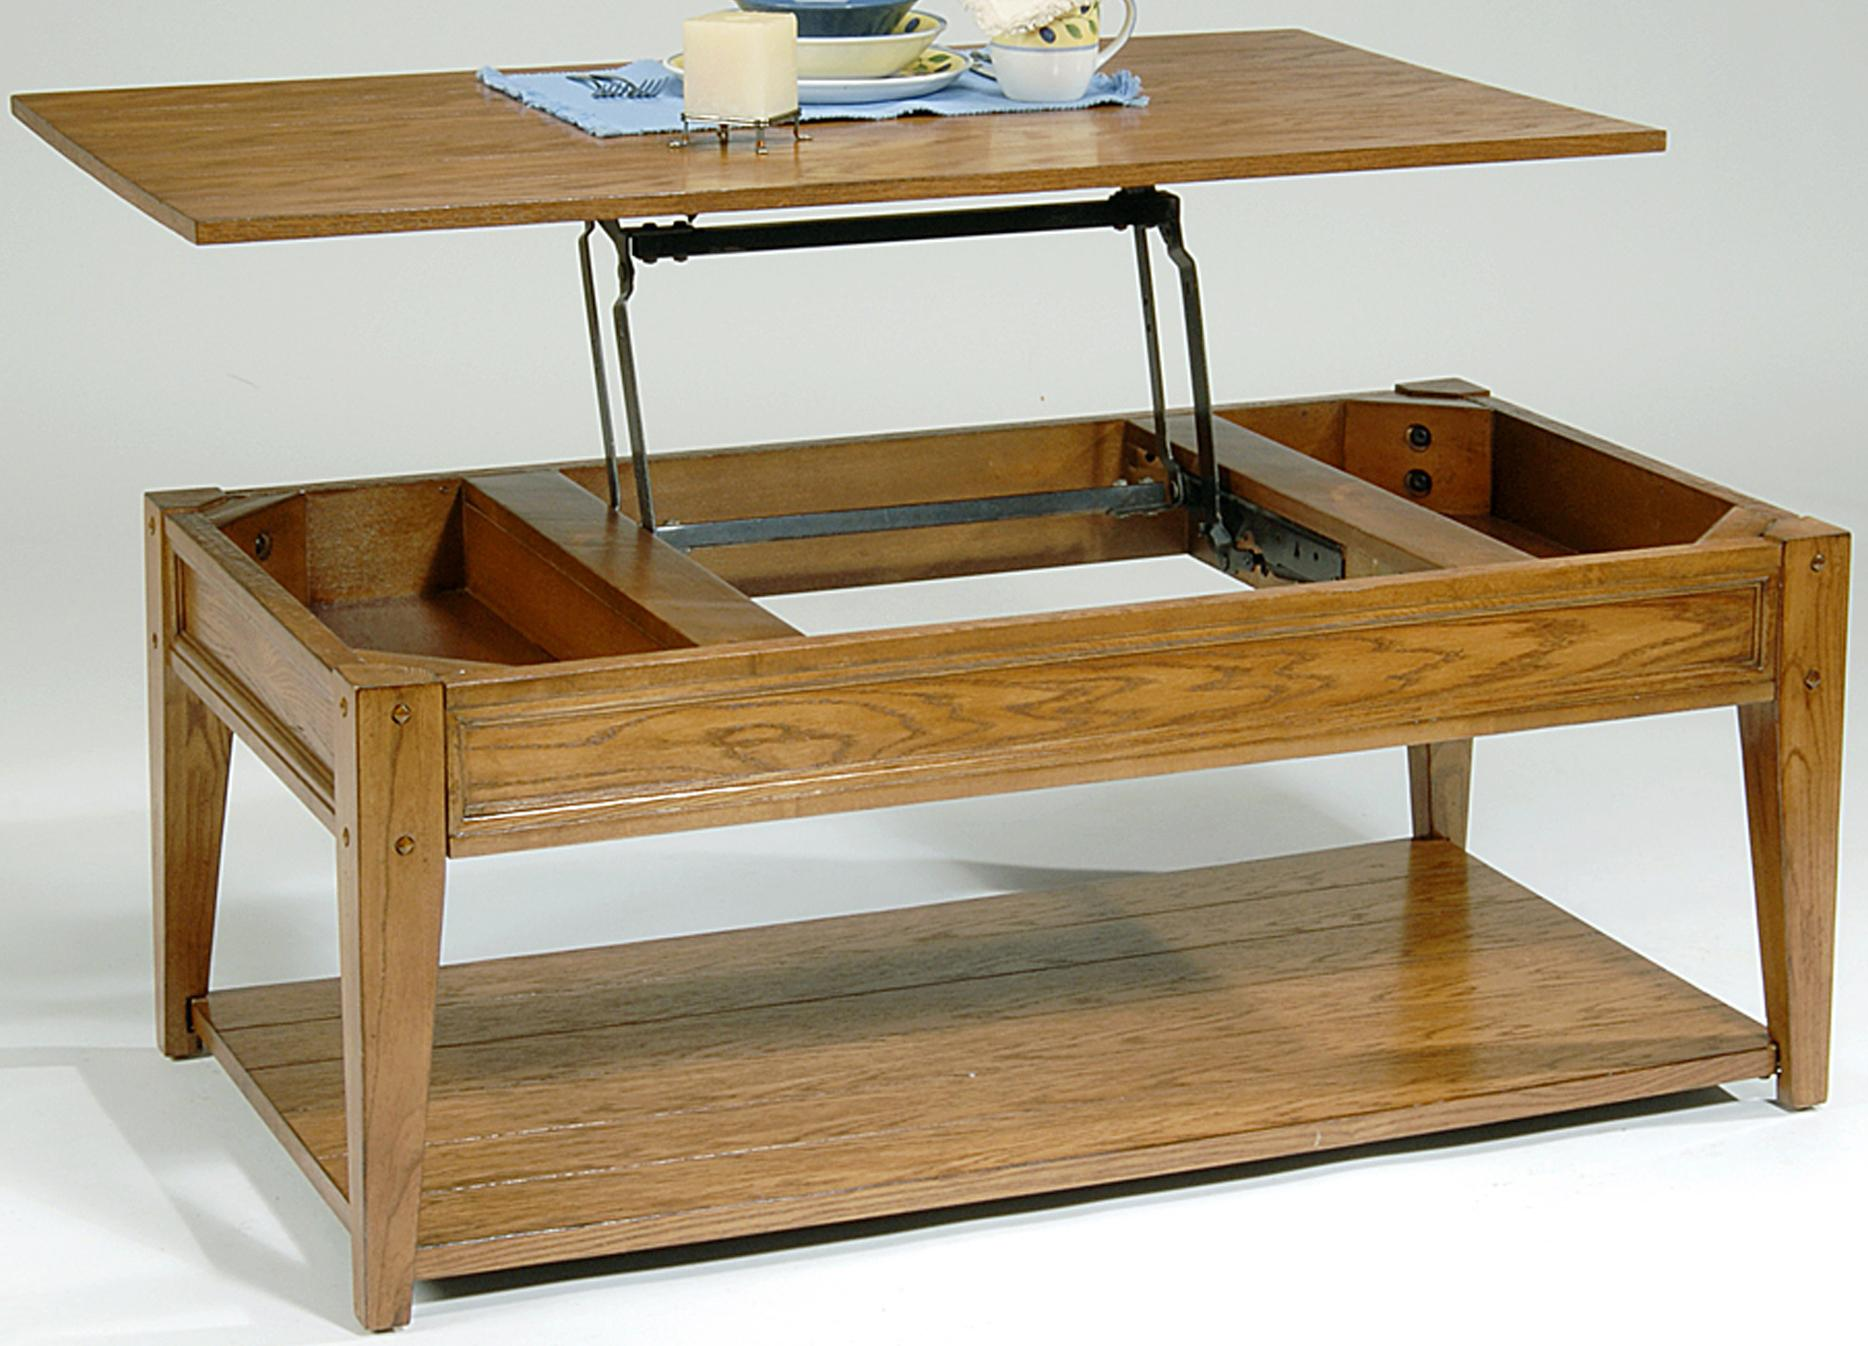 Liberty Furniture Lake House Lift Top Cocktail Table - Item Number: 110-OT1015